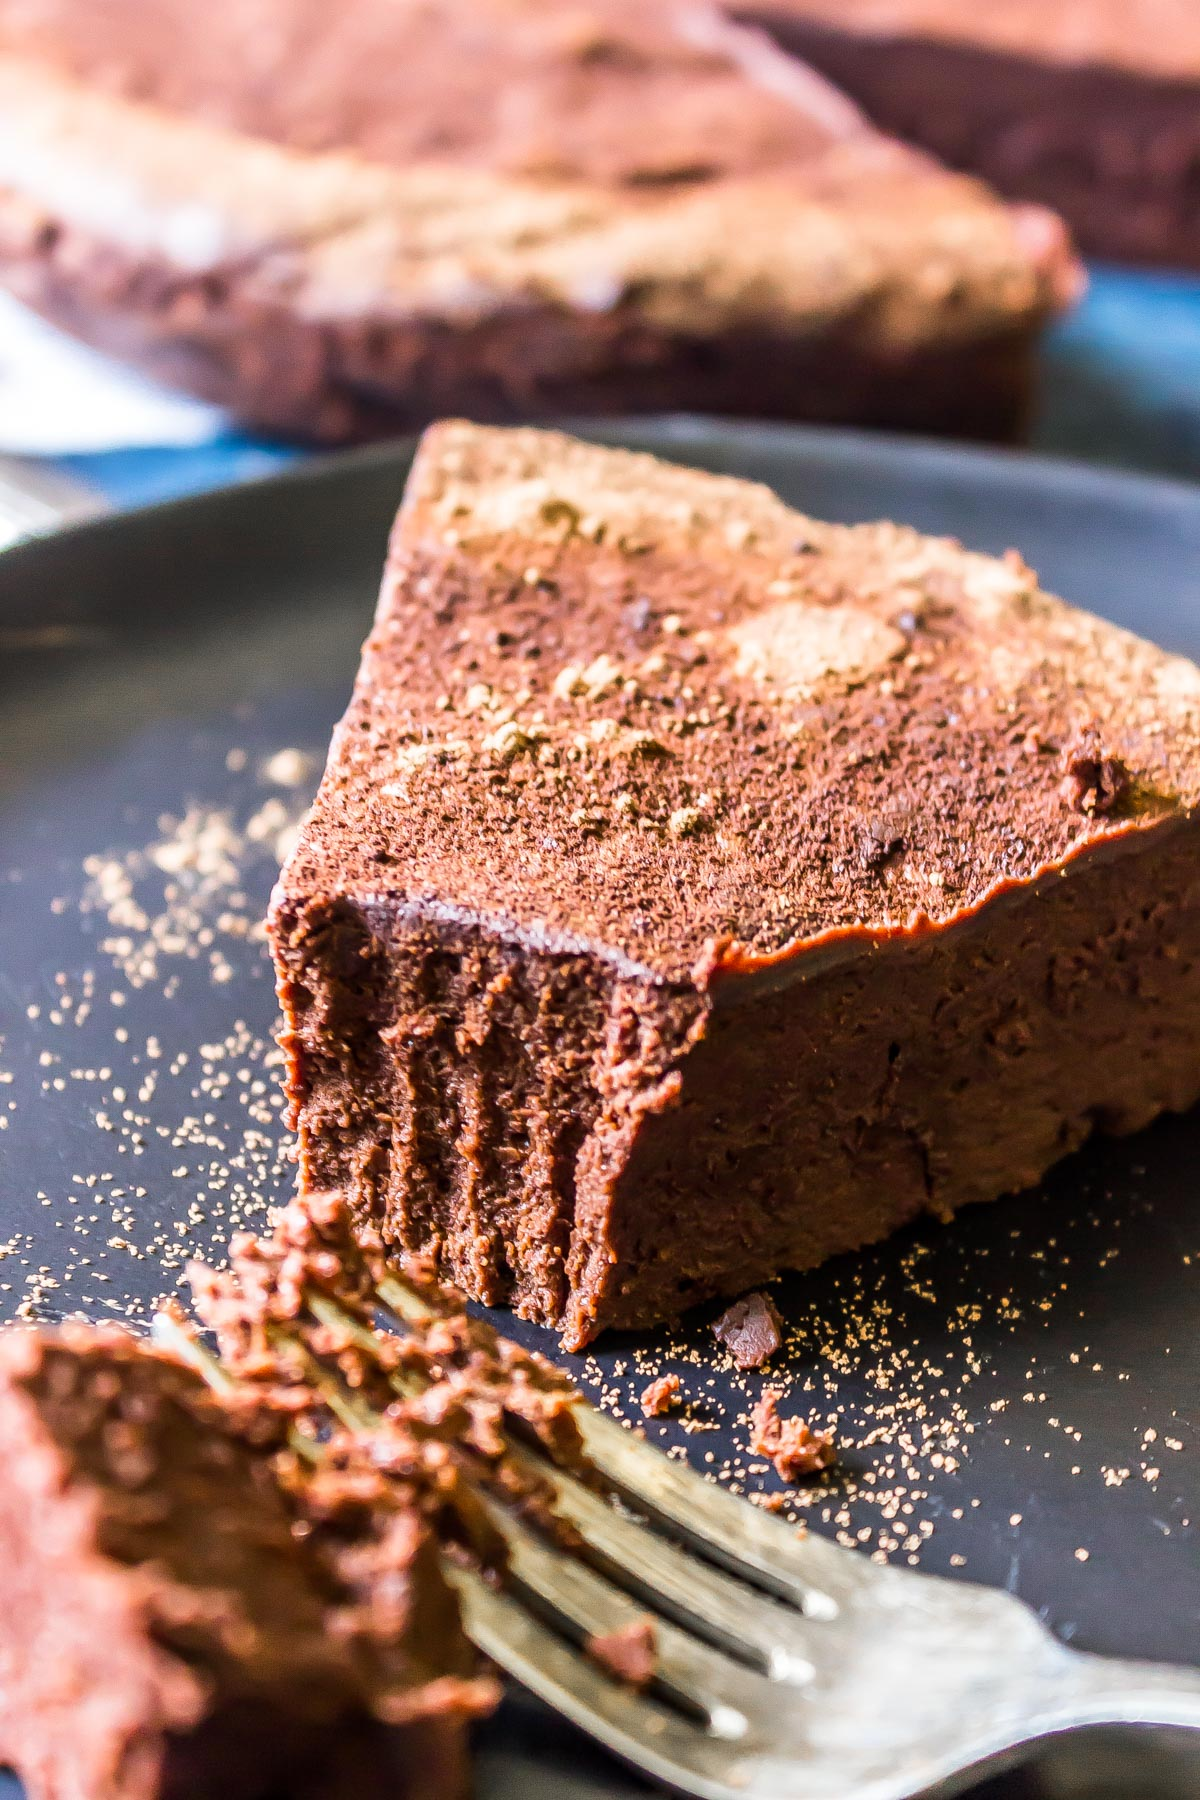 Flourless Chocolate torte with fork marks showing where a bite has been removed.